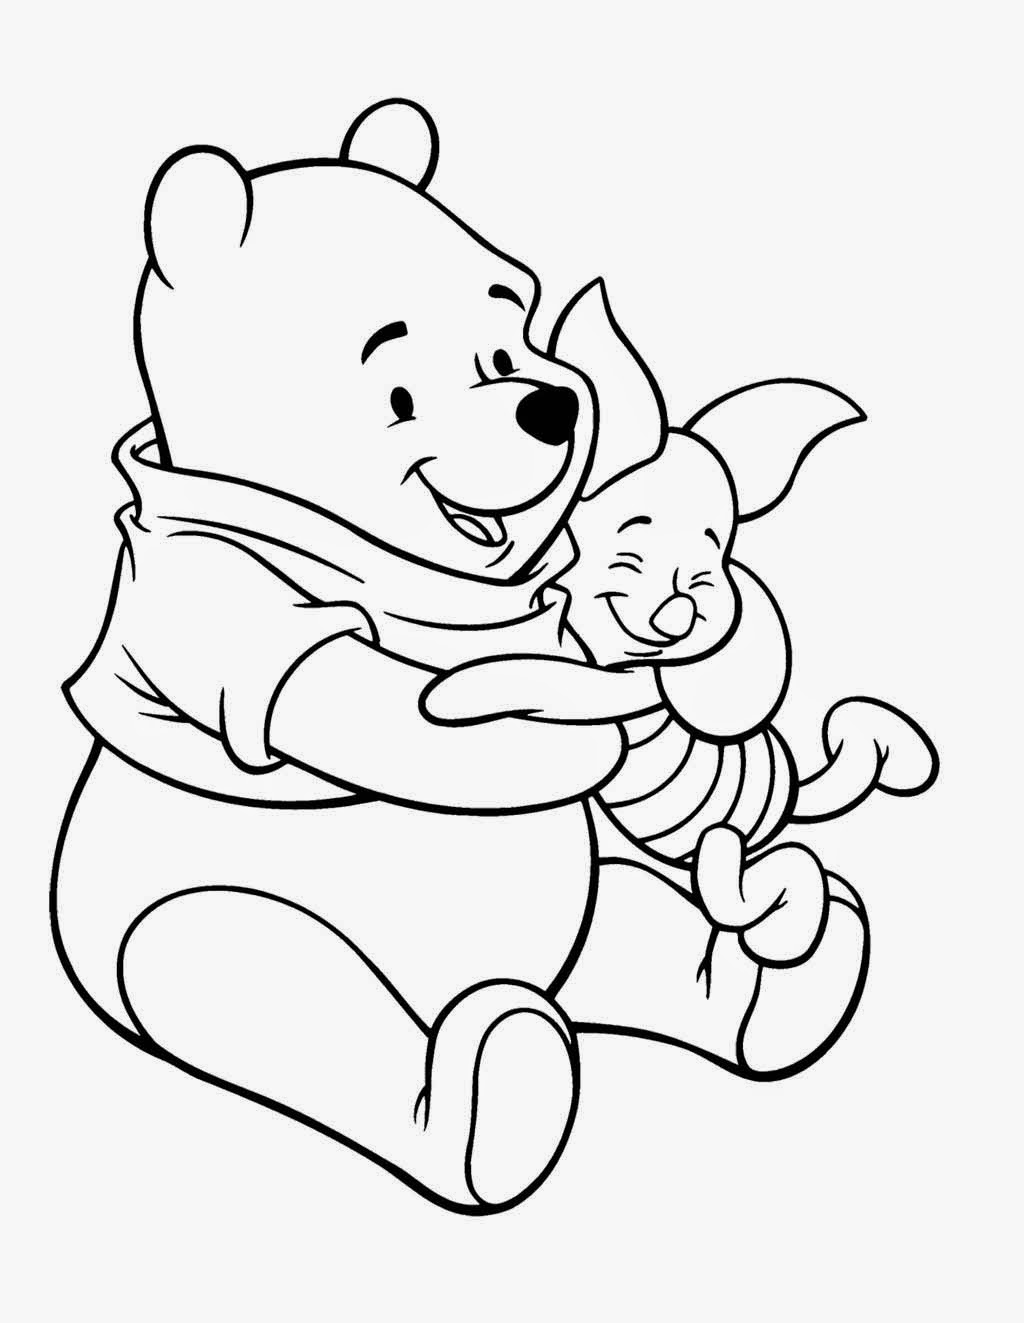 Winnie the pooh coloring pages for kids for Winnie the pooh thanksgiving coloring pages